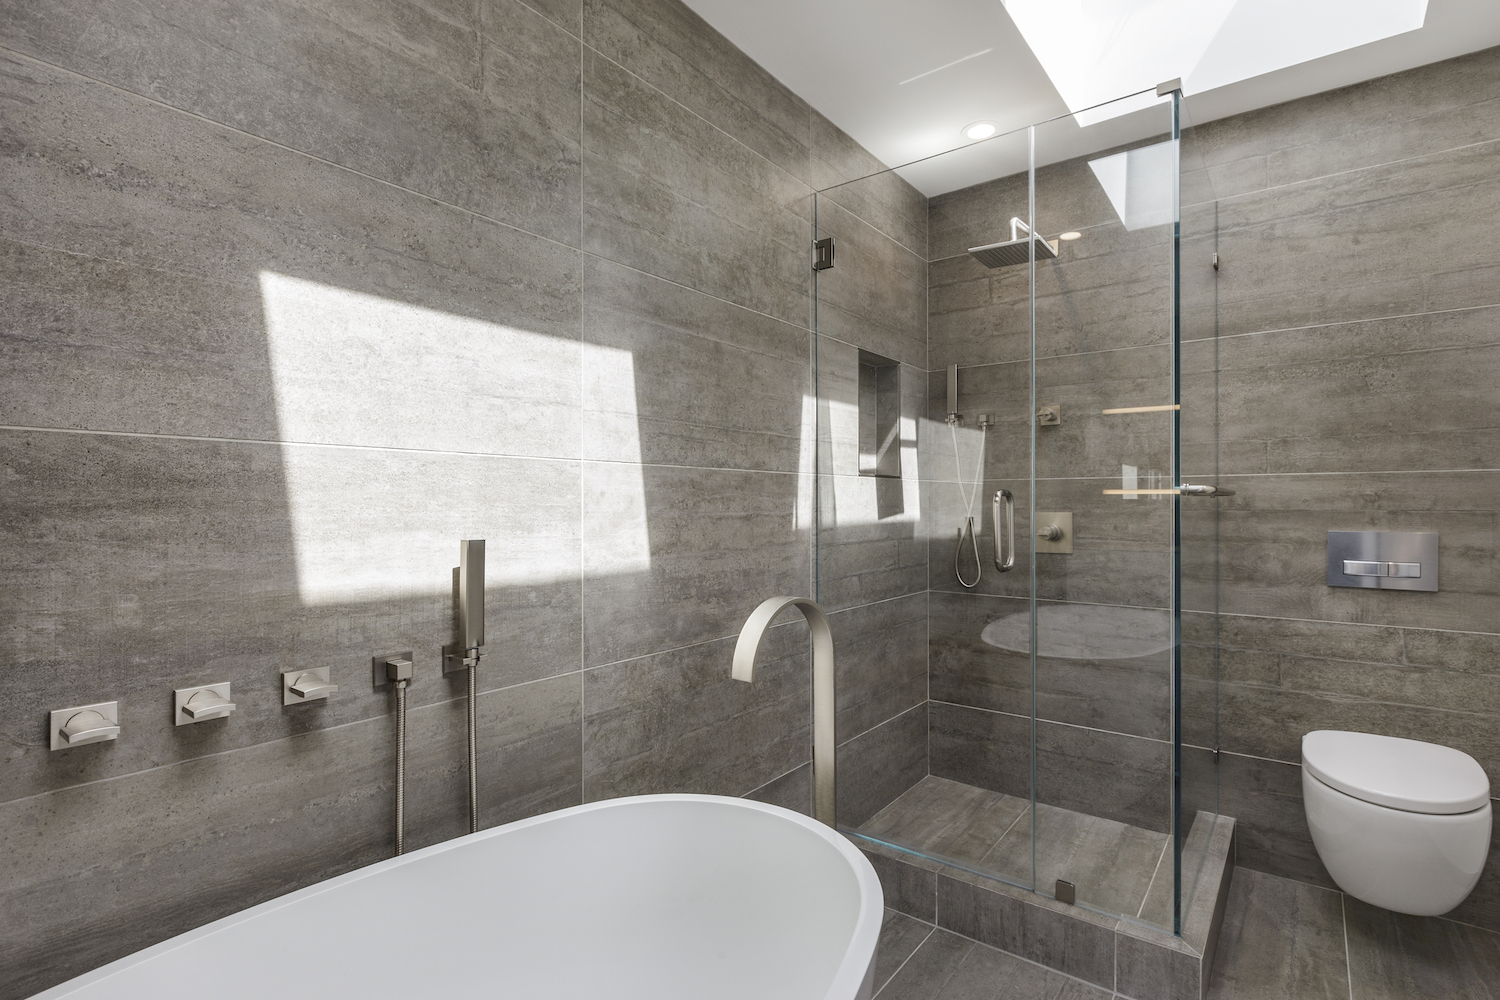 bathroom with grey wall tile and stall shower and soaking tub and wall mounted toilet and brushed nickel fixtures.jpg